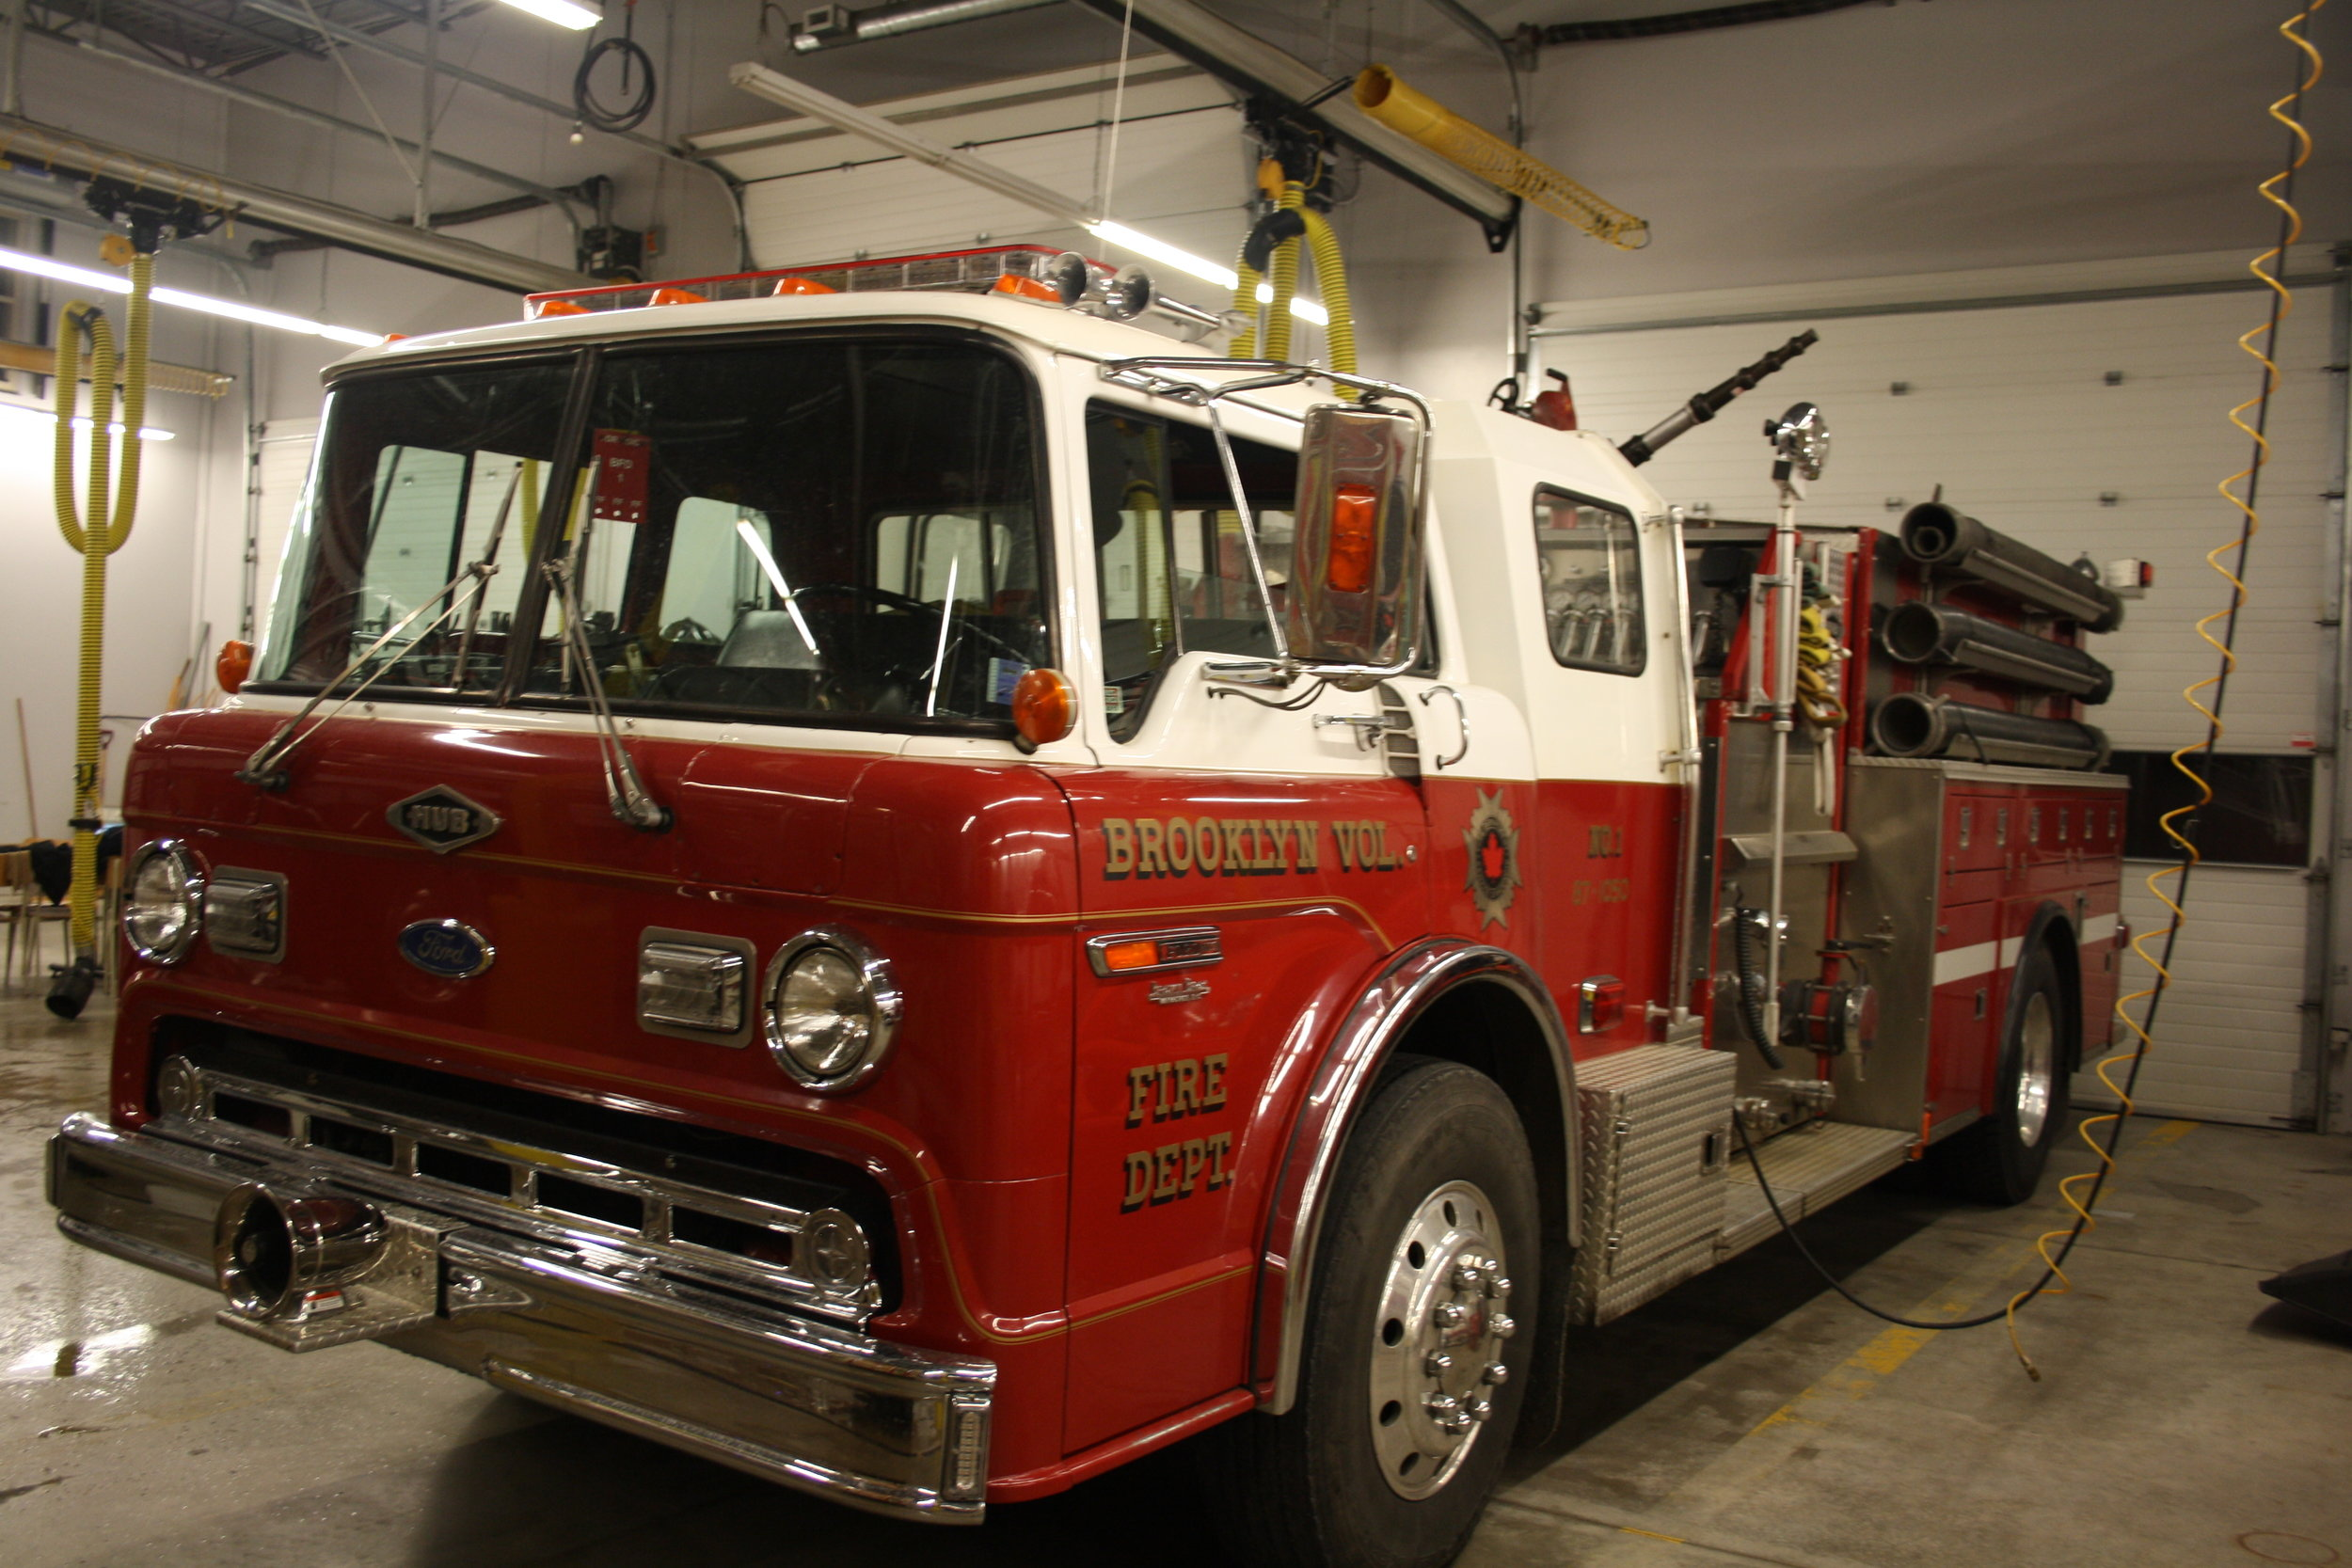 Truck one is a 1987 Ford 8000 / Hub Pumper with a 1050 GPM pump and has 800 gallons of water on board.